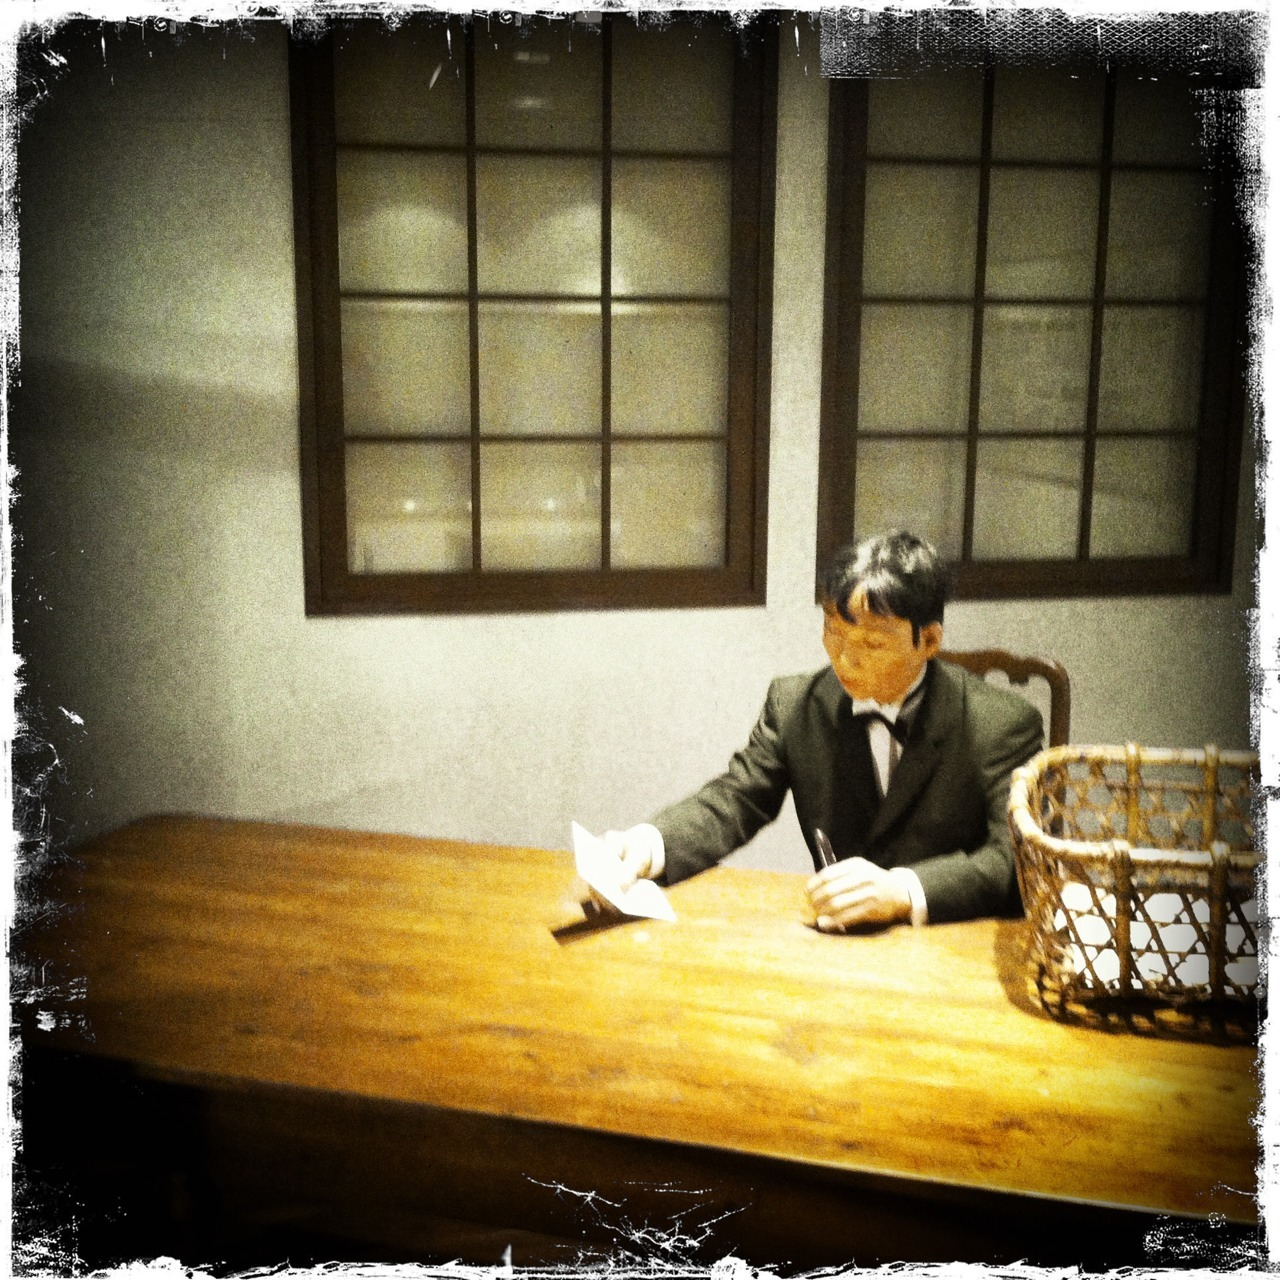 Meiji post office exhibit, Communication Museum, Tokyo